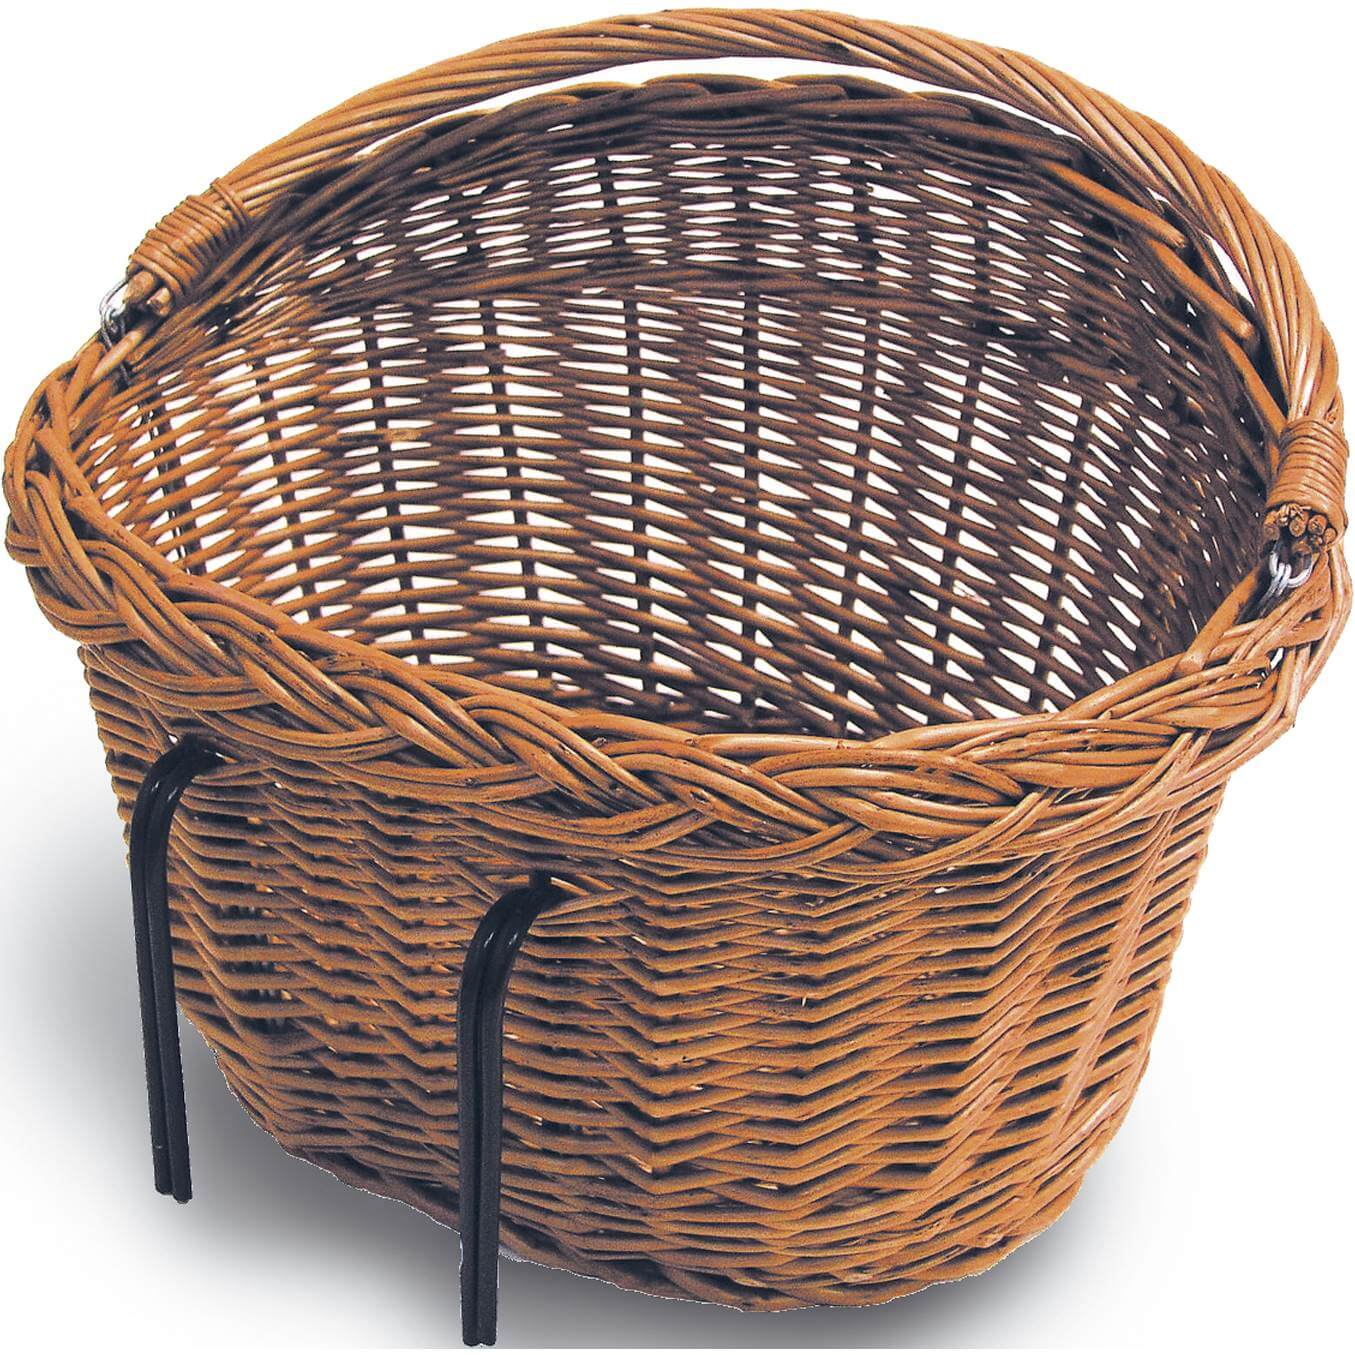 Basil Wicker Bicycle Basket Detroit Oval Belly 15021